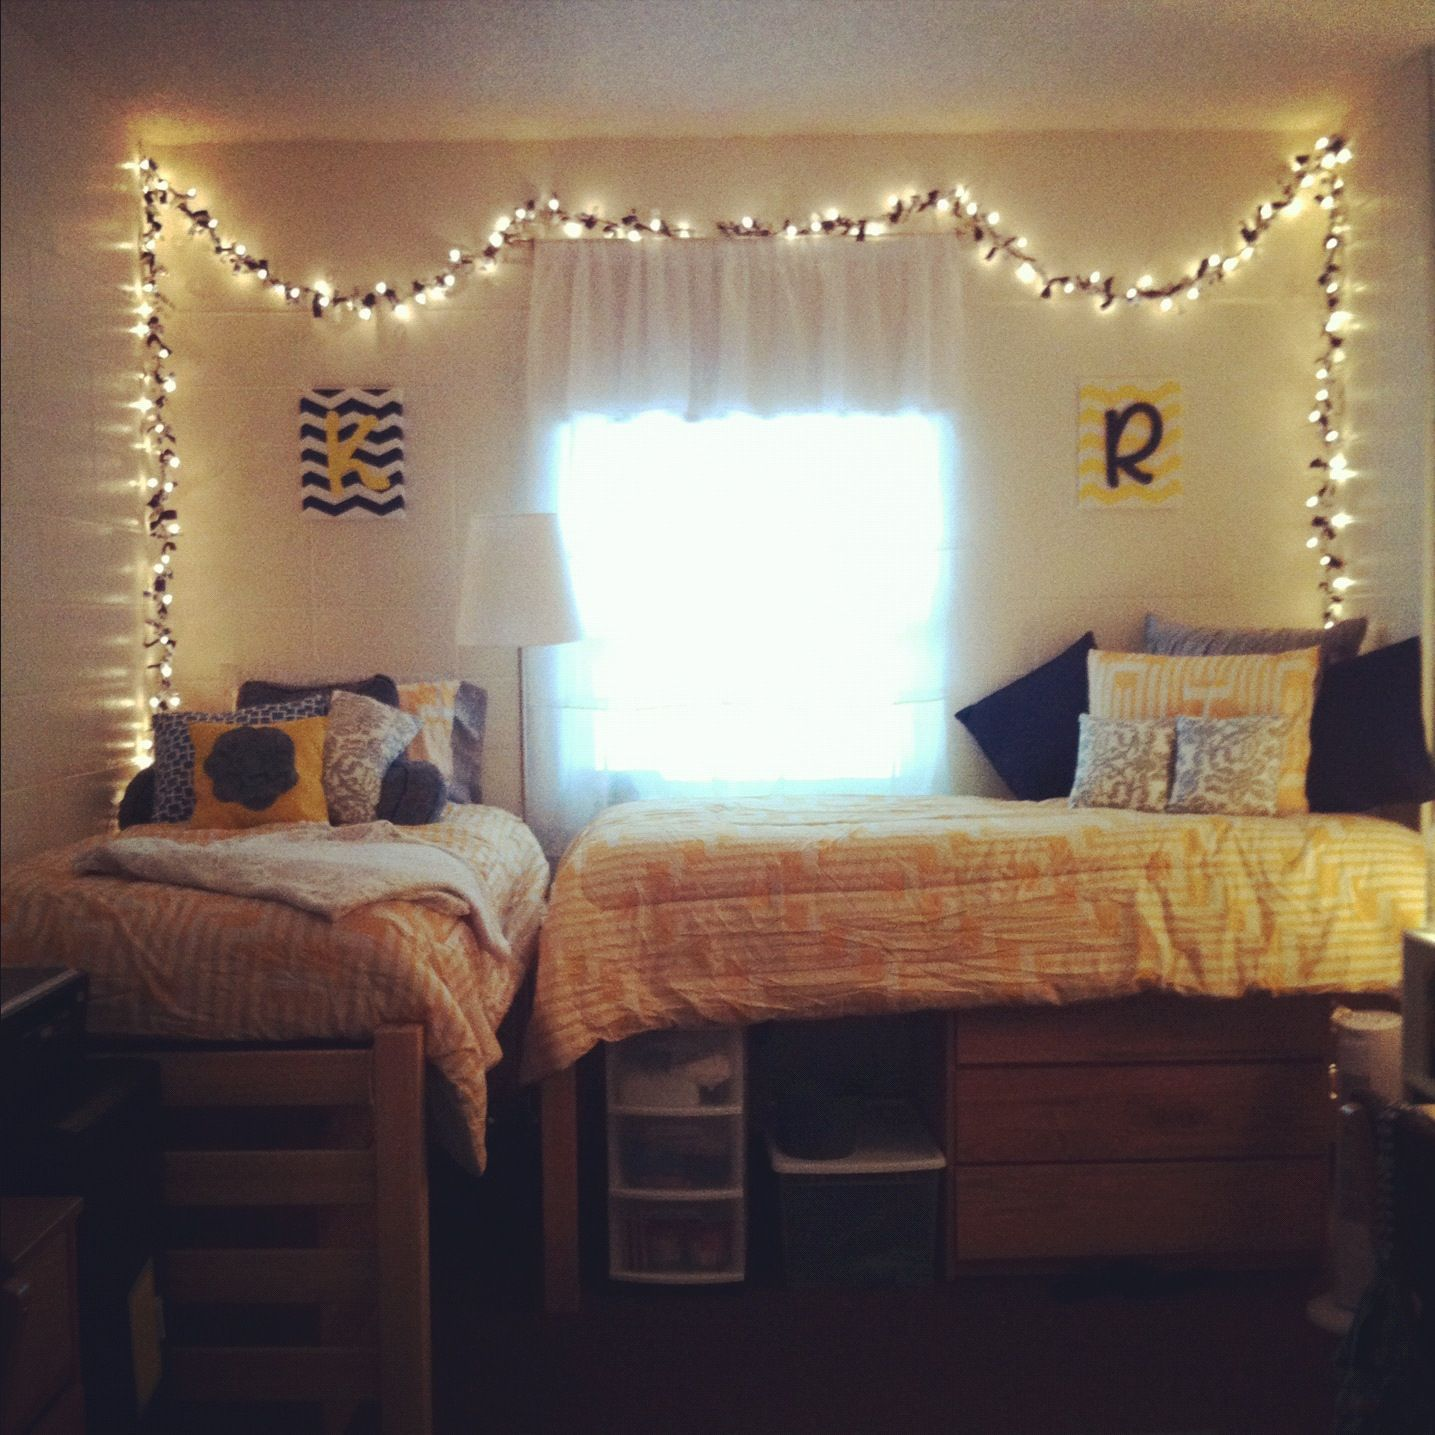 White Christmas Lights Around The Edges Of The Walls Would Look - Christmas lights on bedroom wall